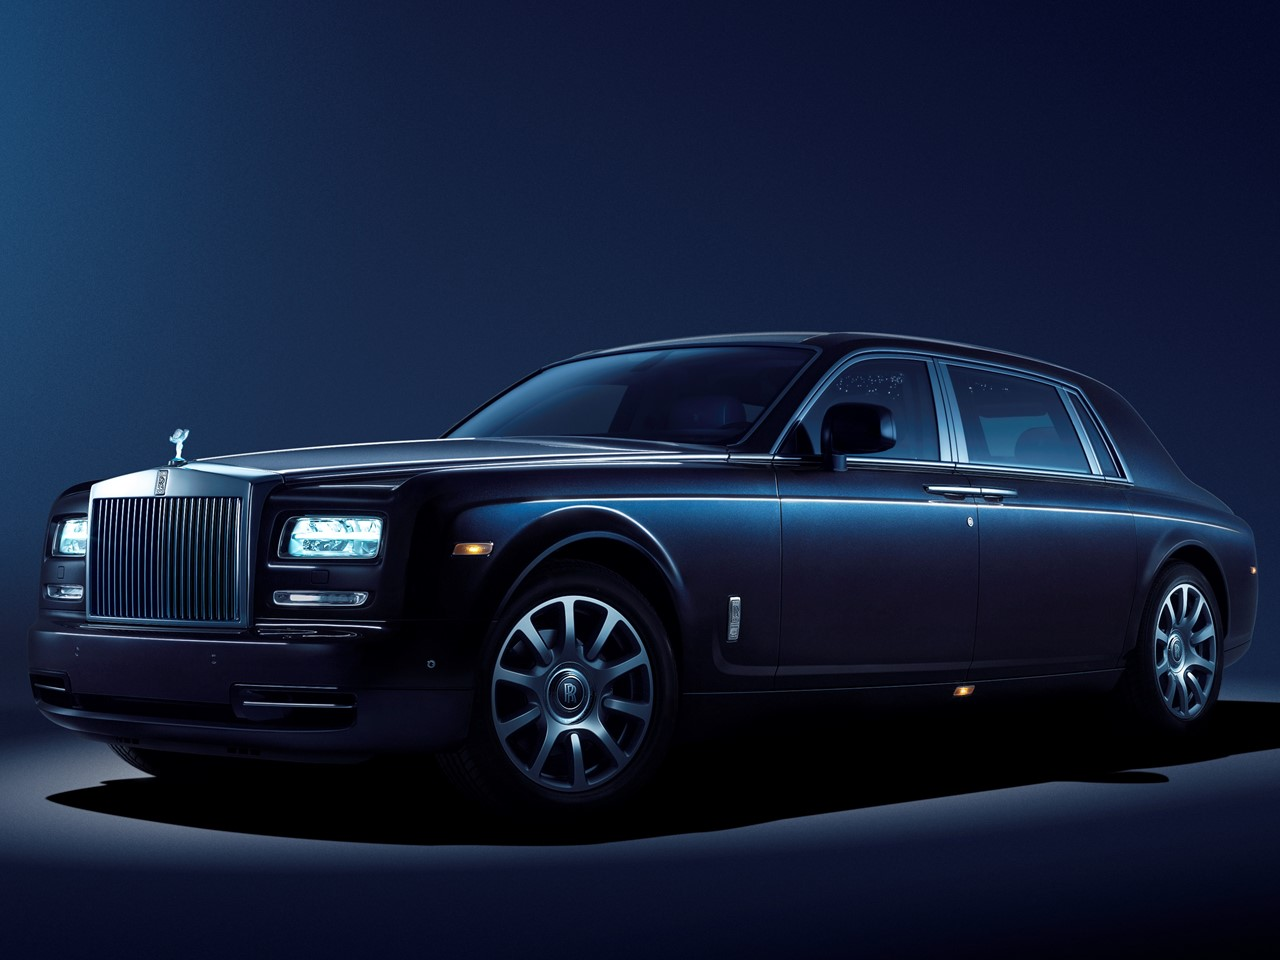 rolls royce phantom ewb notoriousluxury. Black Bedroom Furniture Sets. Home Design Ideas